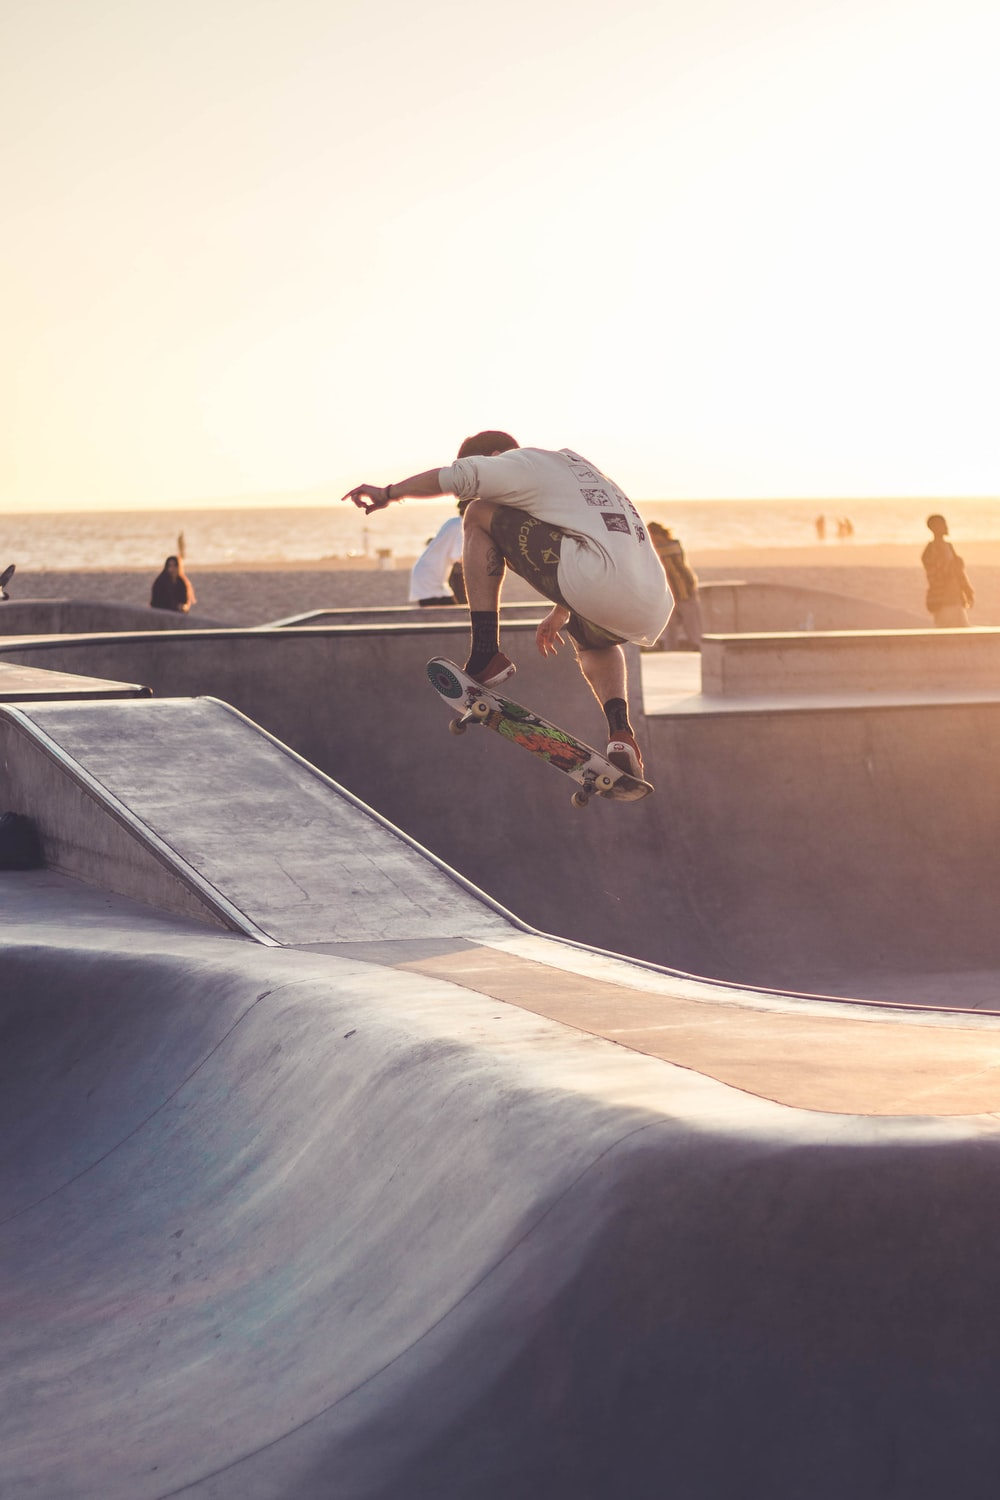 unknown person skateboarding outdoors